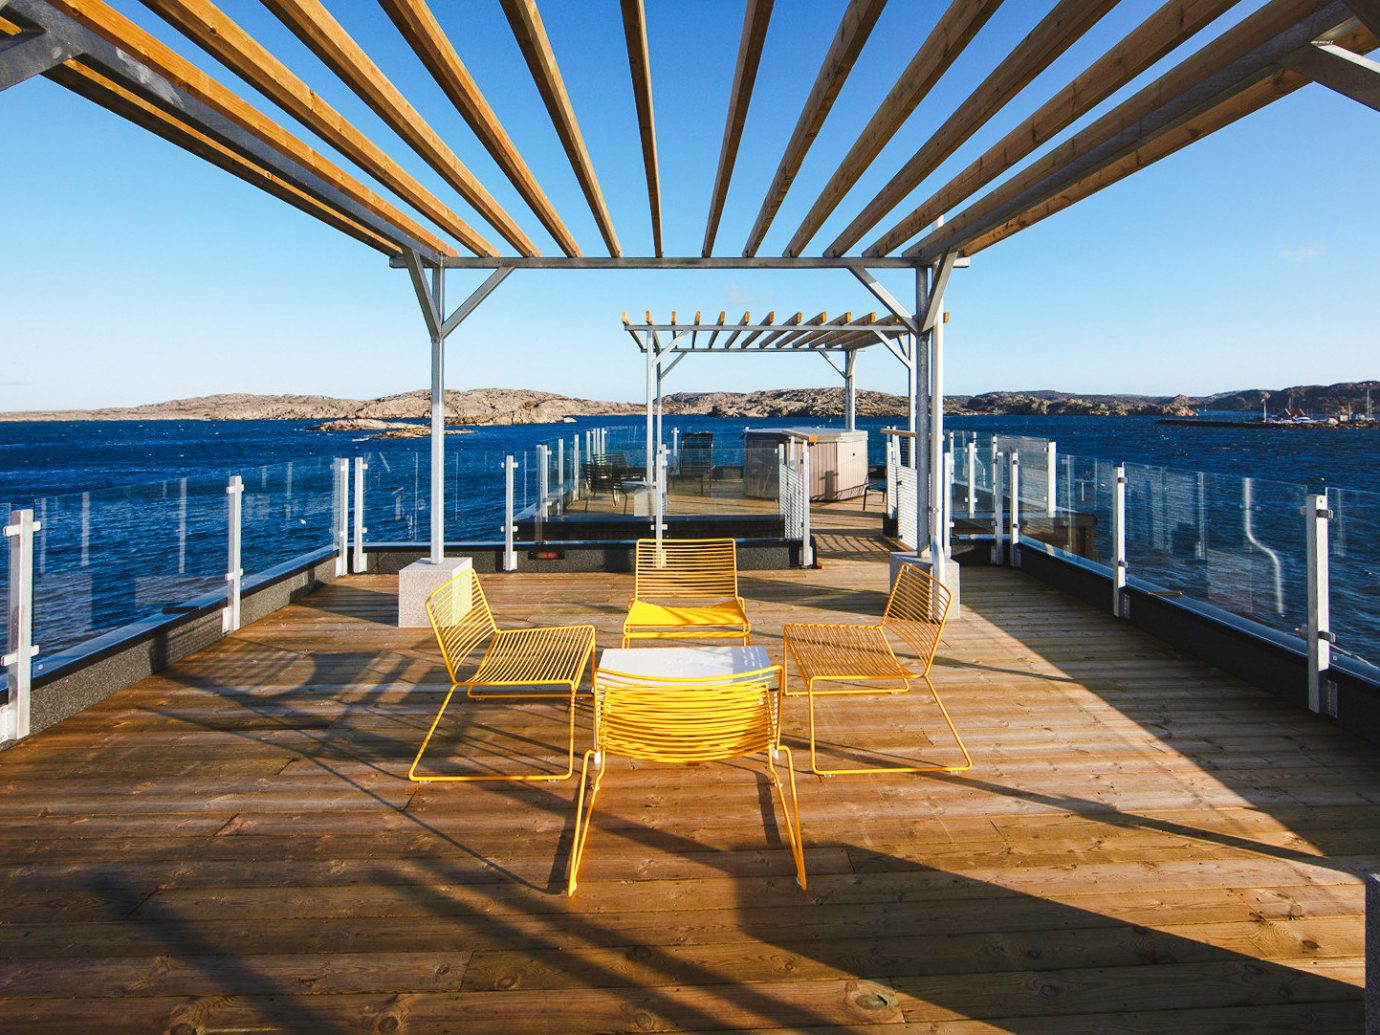 Boutique Hotels Sweden water Sea sky real estate dock pier Deck outdoor structure Boat roof vacation leisure